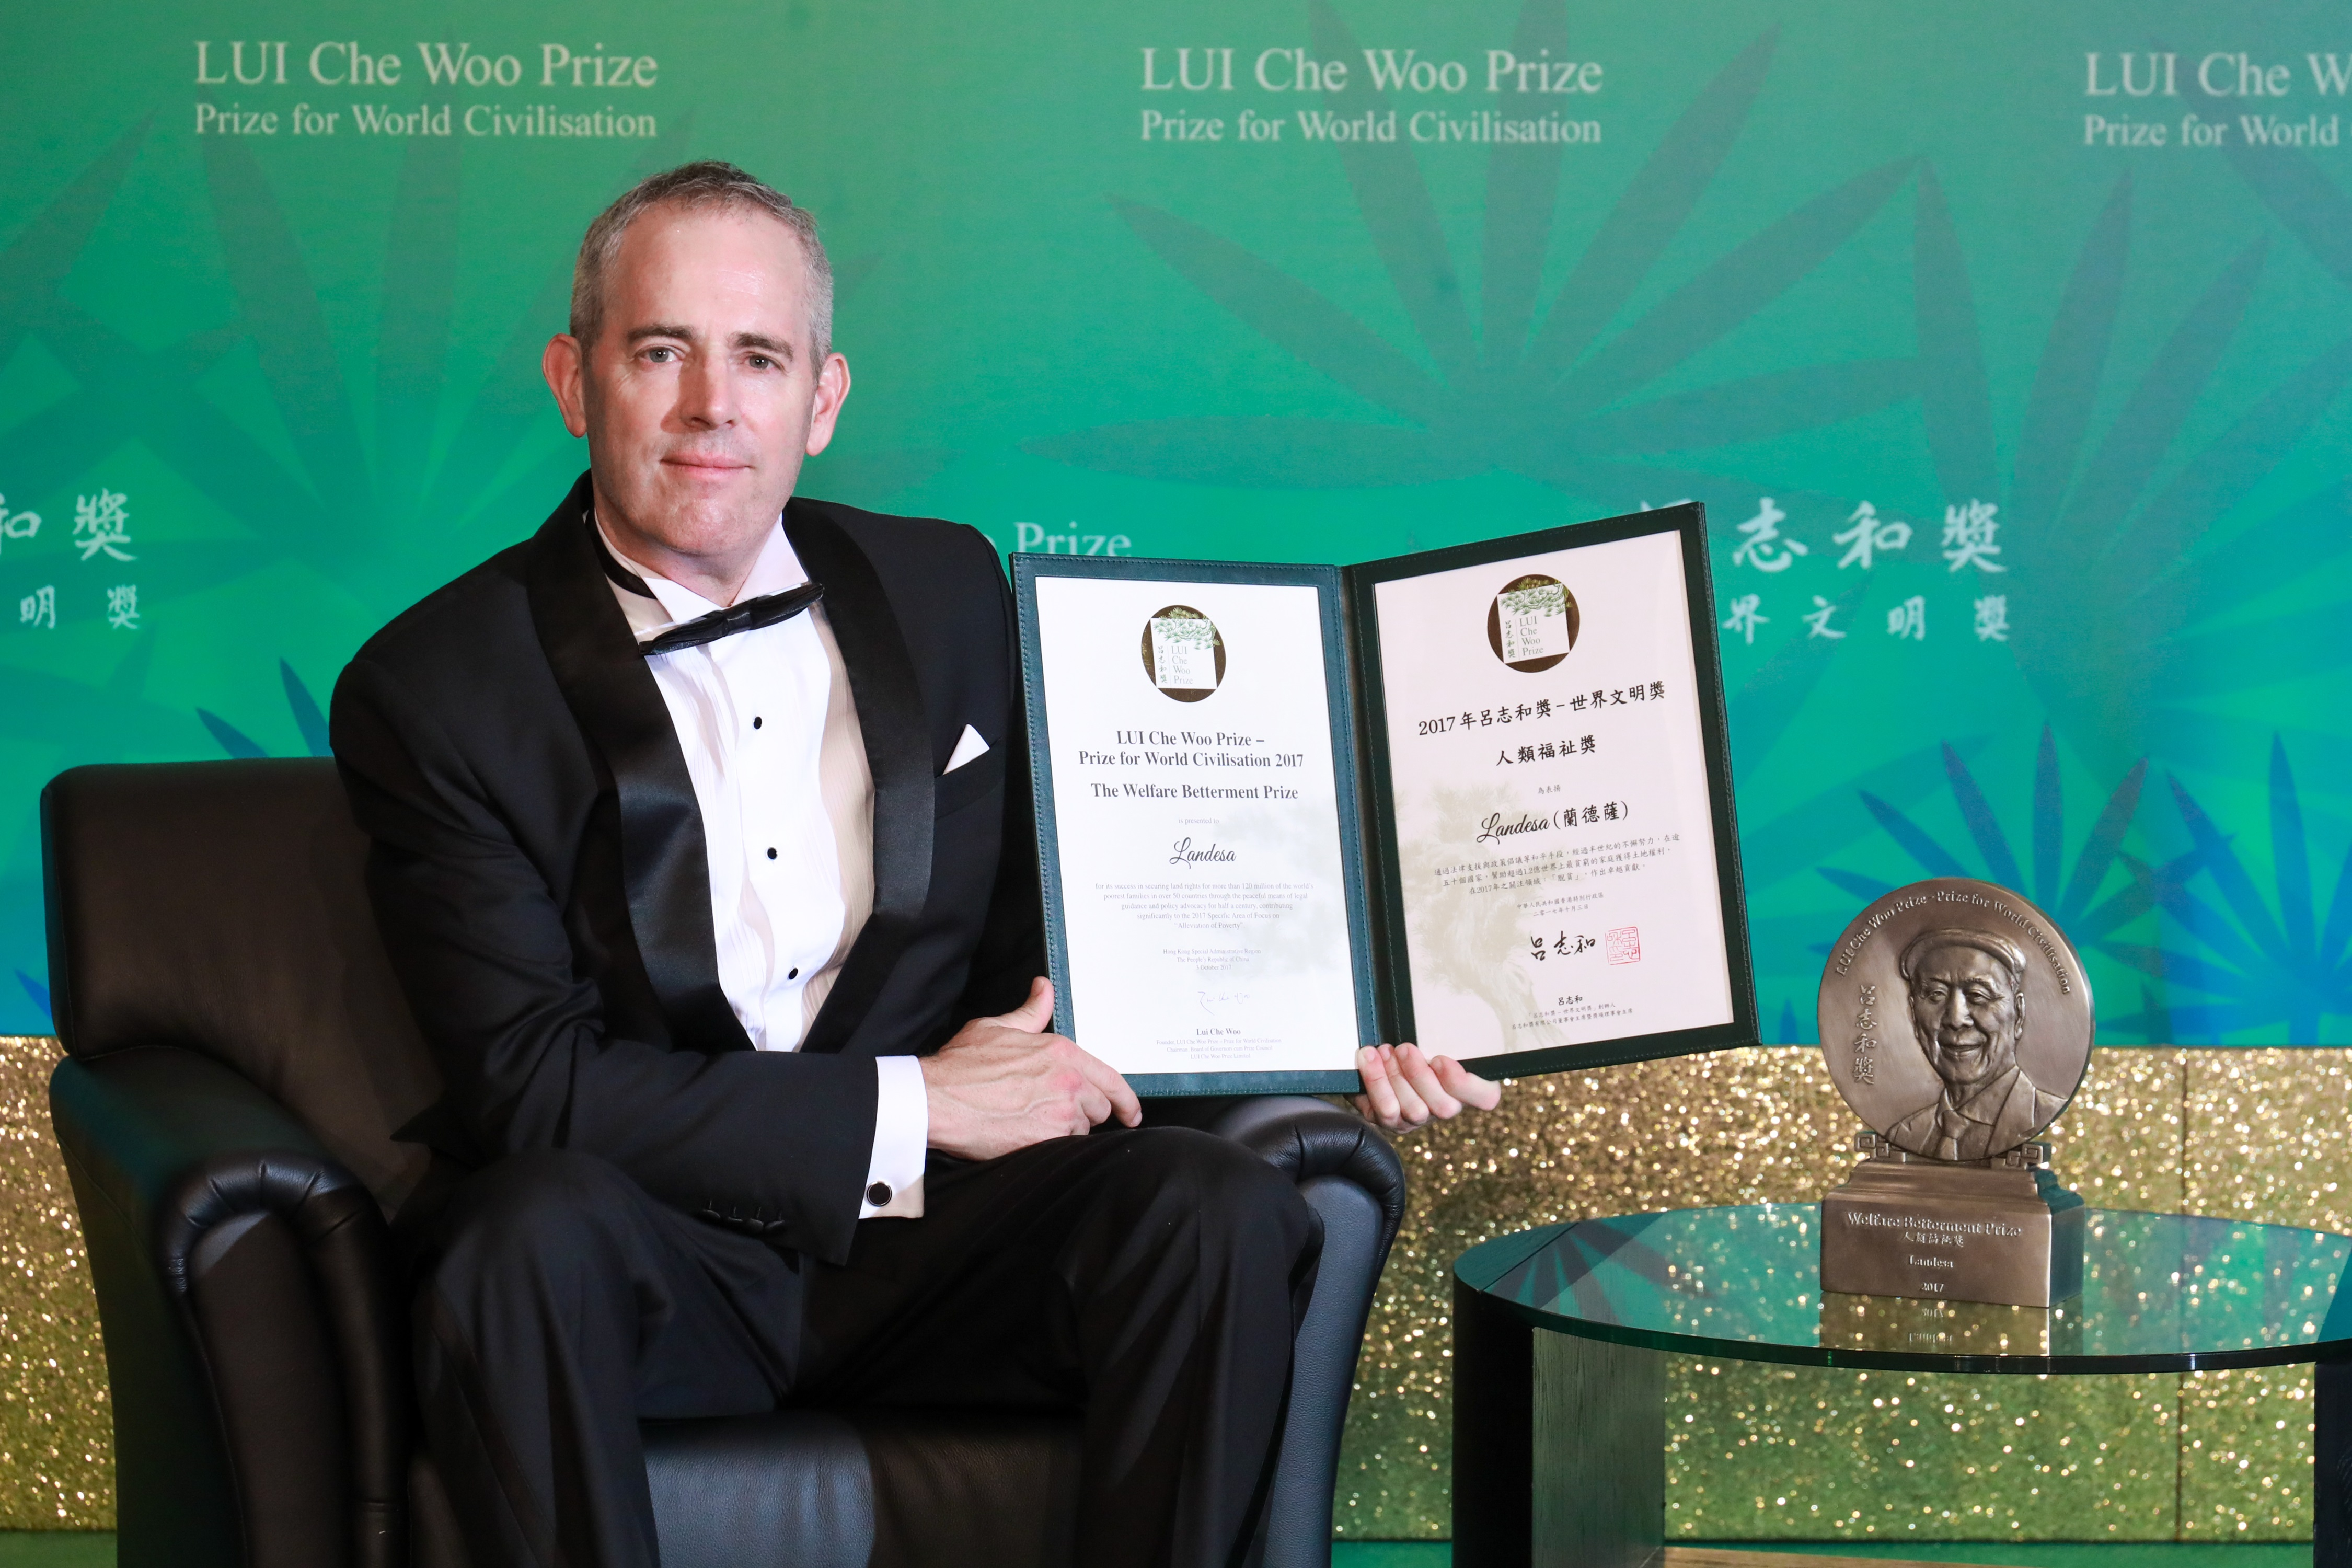 2017 LUI Che Woo Prize - Welfare Betterment Prize Laureate - Landesa - represented by Mr. Chris Jochnick, President and CEO of Landesa